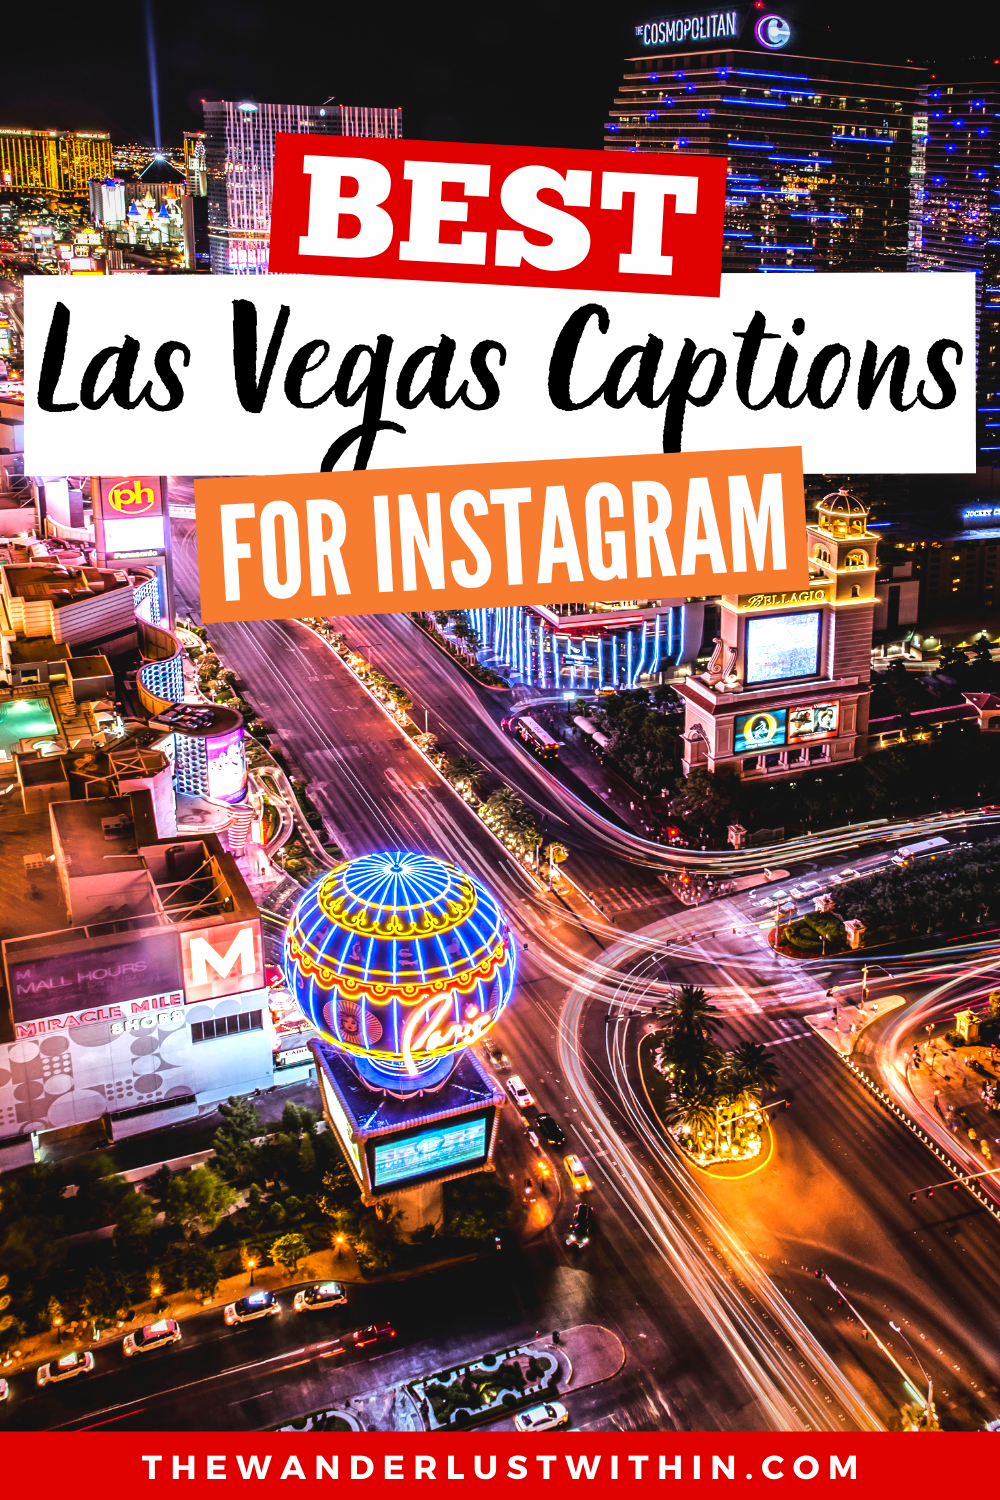 75 Best Las Vegas Quotes And Captions For Instagram 2021 The Wanderlust Within Vegas Quotes Las Vegas Quotes Instagram Captions